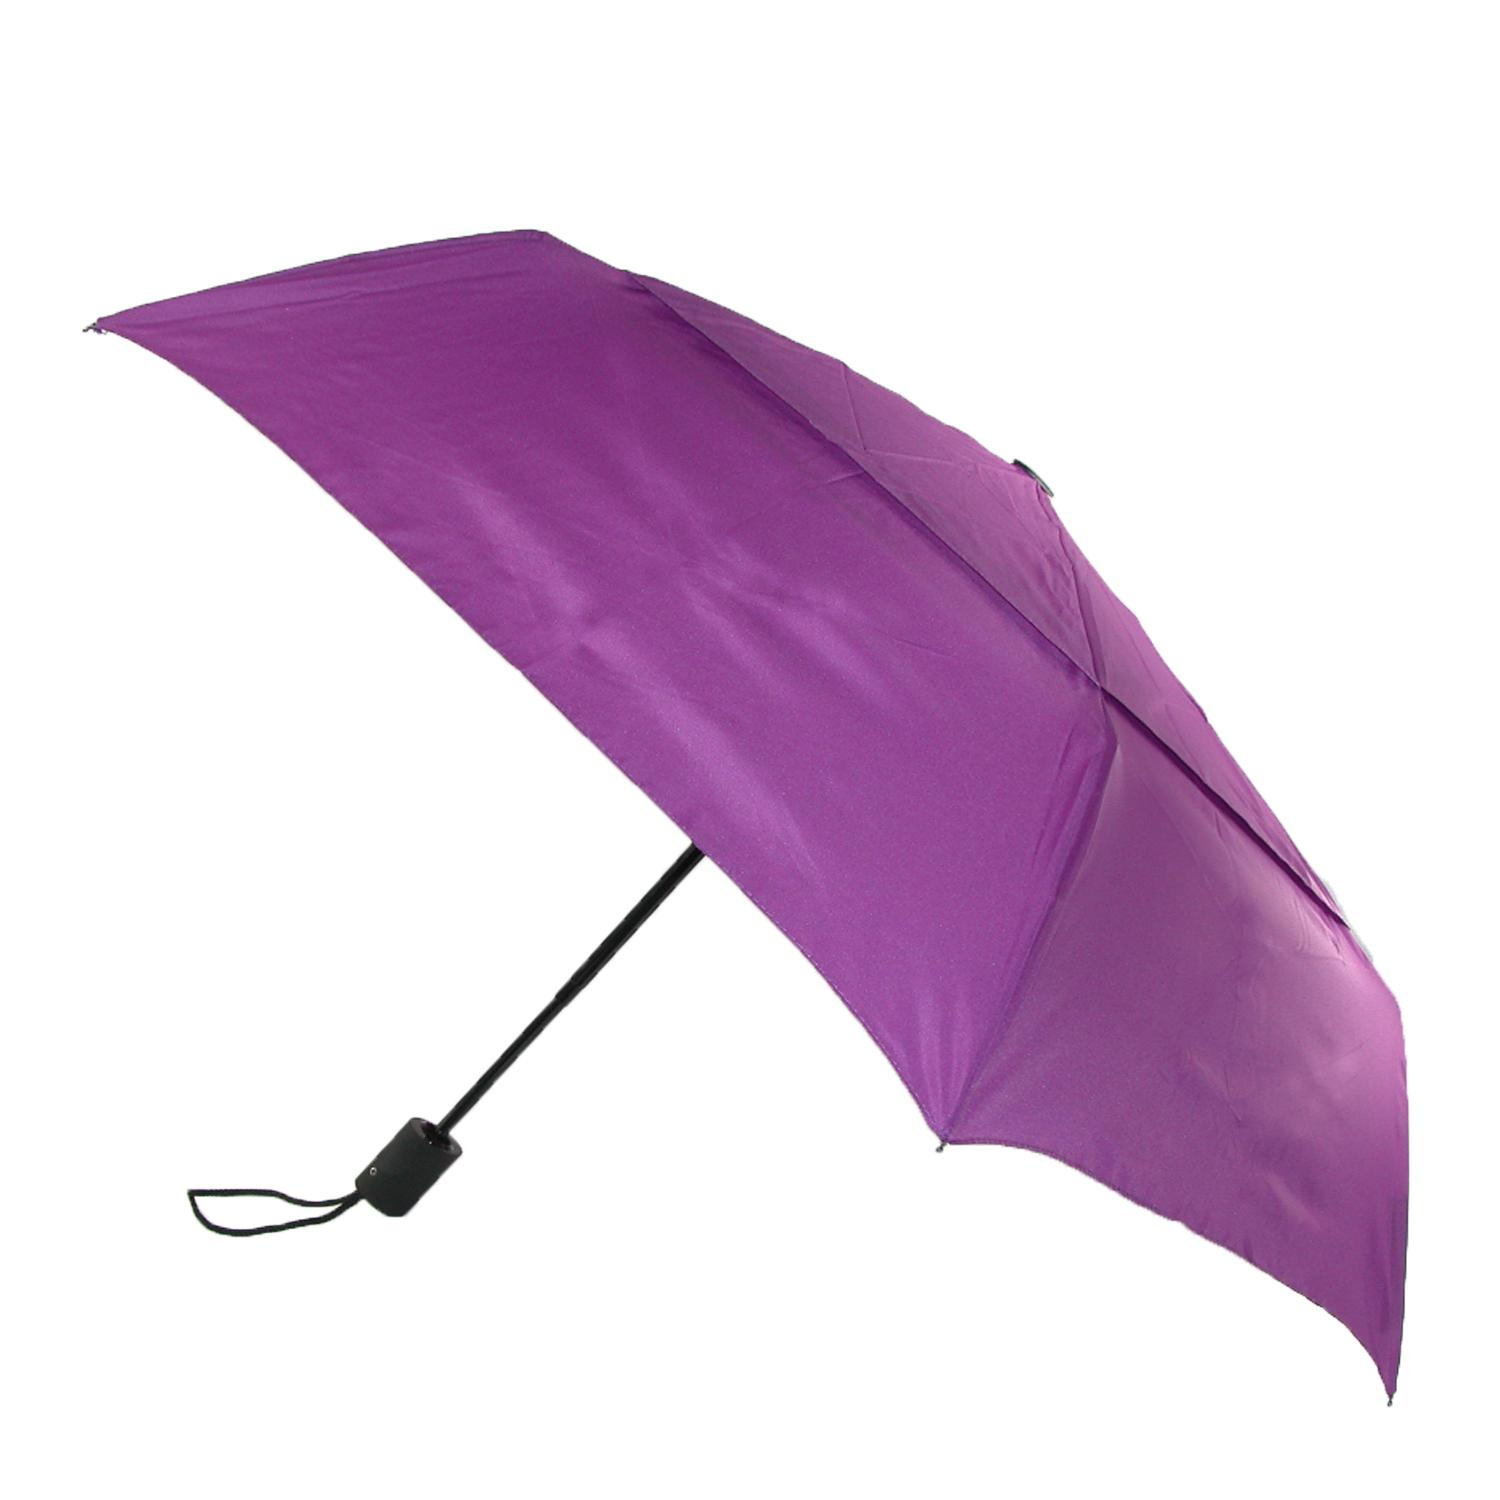 Compact Travel Umbrella Walmart Shedrain Men 39;s Auto Open Close Vented Compact Umbrella